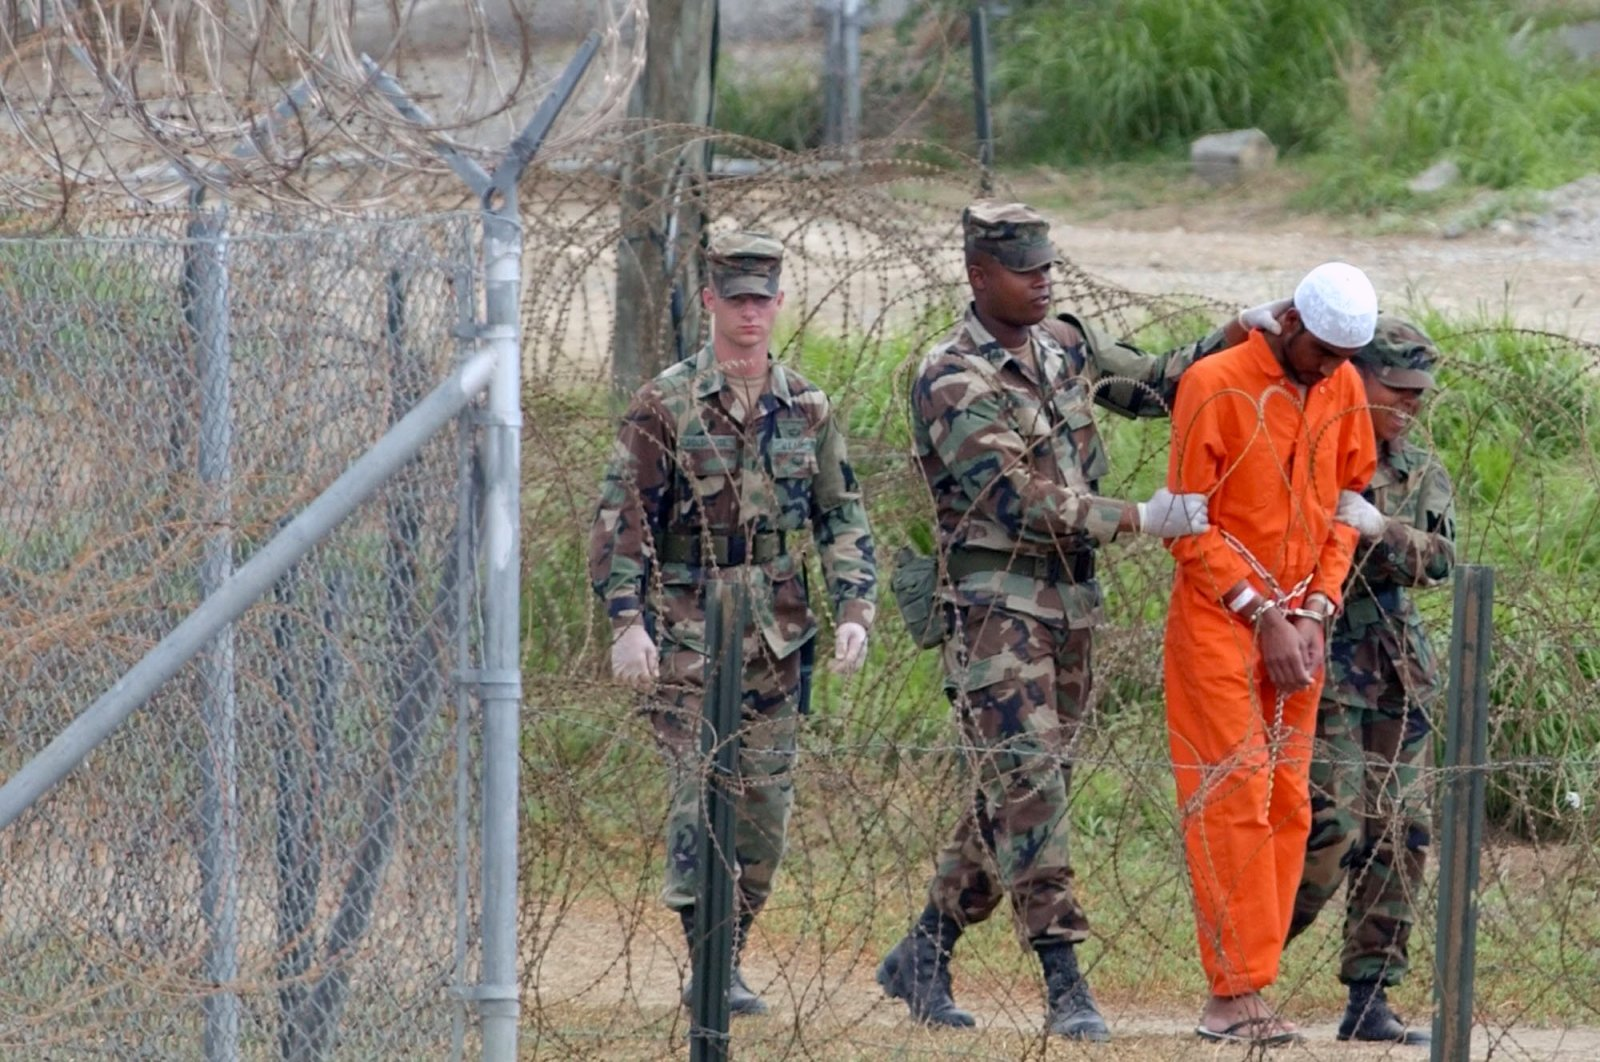 In this Feb. 6, 2002, file photo a detainee is led by military police to be interrogated by military officials at Camp X-Ray at the U.S. Naval Base at Guantanamo Bay, Cuba. (AP Photo)